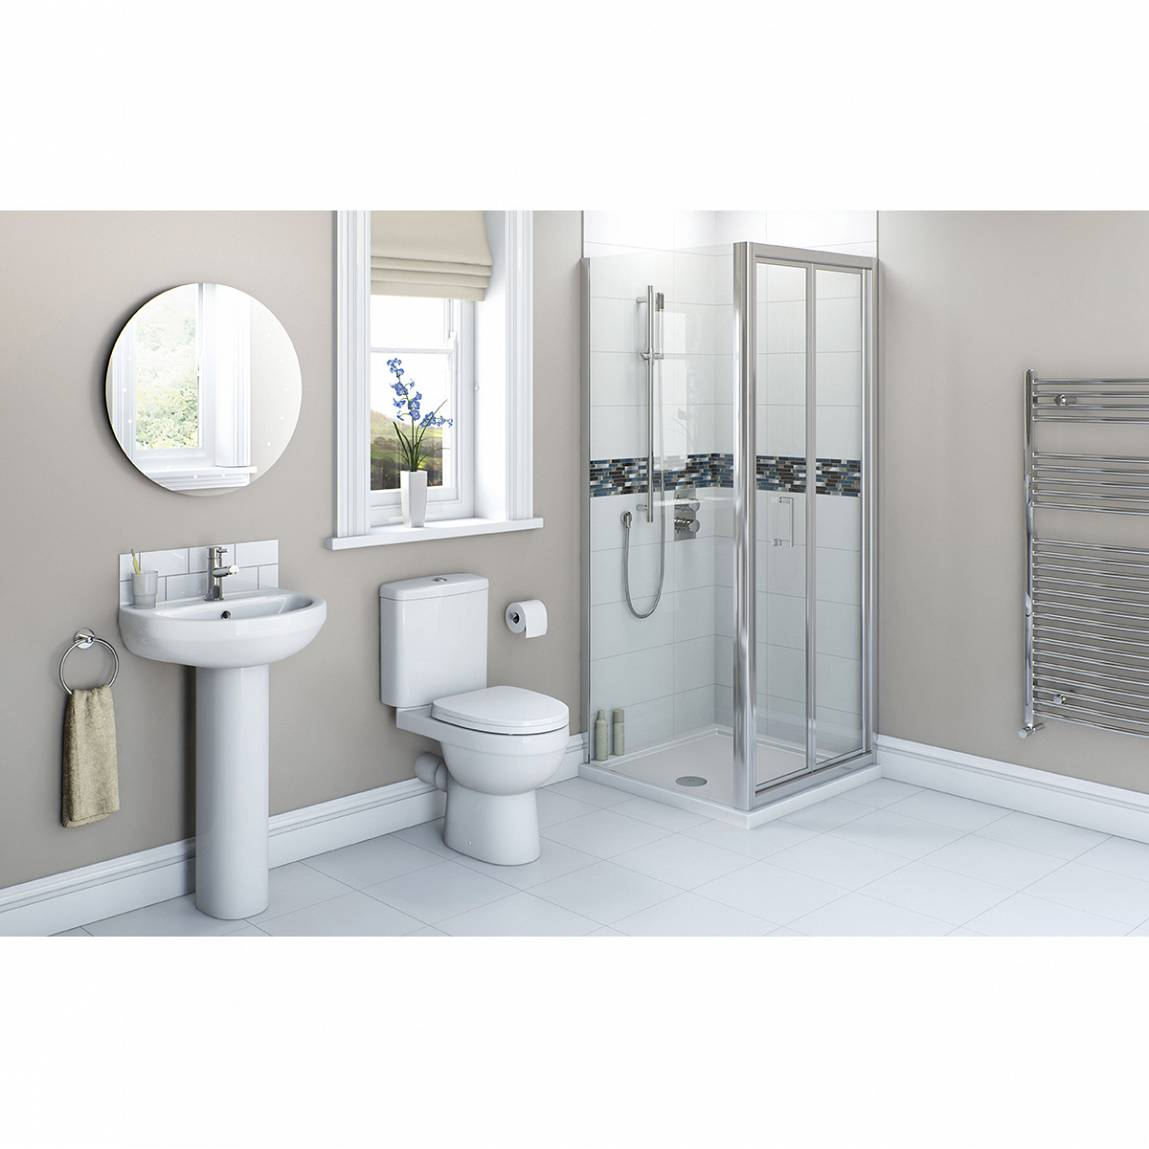 Image of Energy Bathroom set with Bifold Shower Enclosure 900